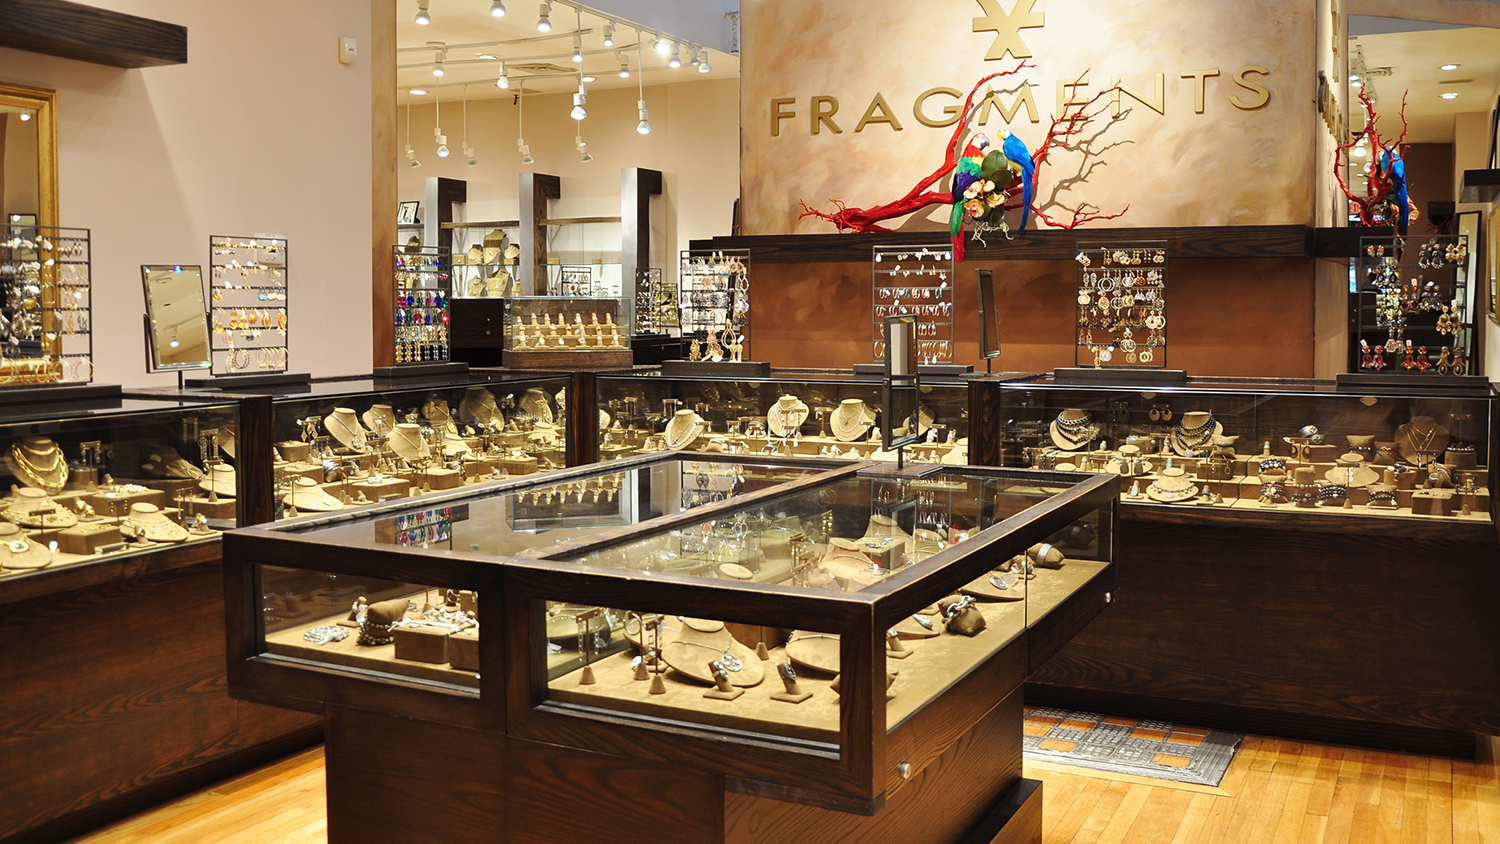 Inspiration from New York's jewelry stores, merchandise displays inside Fragments, for jewelry display ideas.